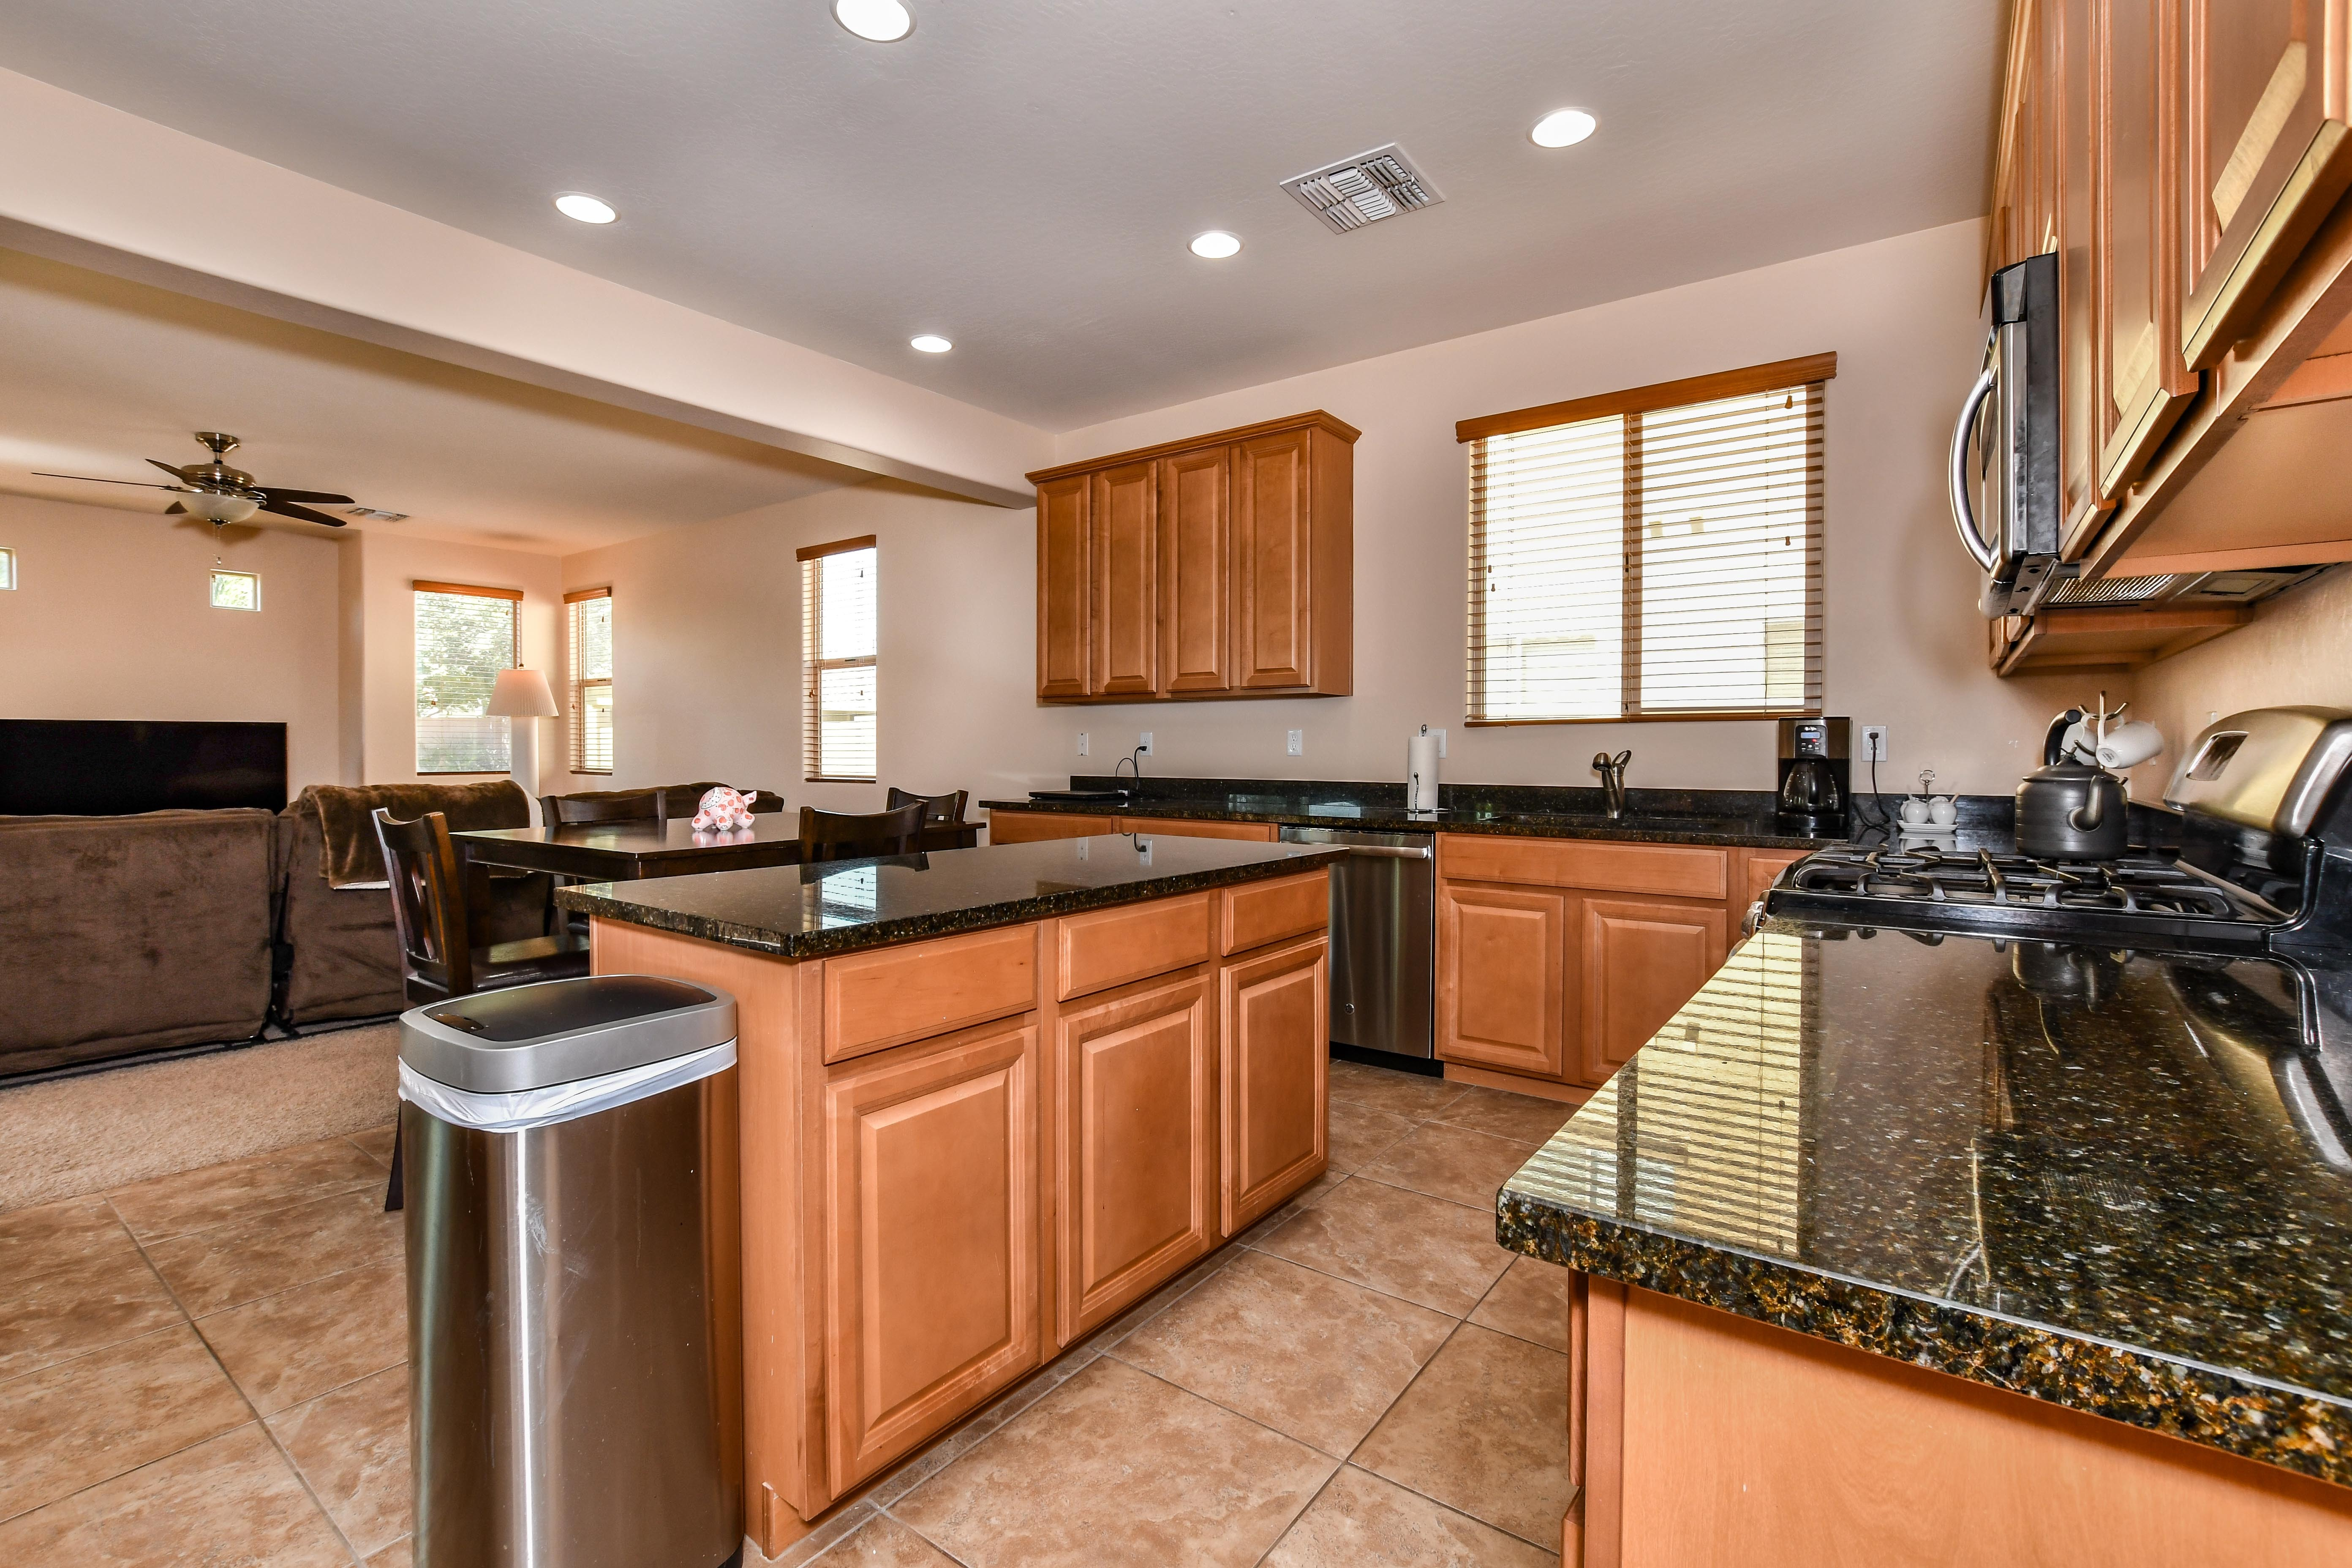 3 bedroom home for sale in gilbert